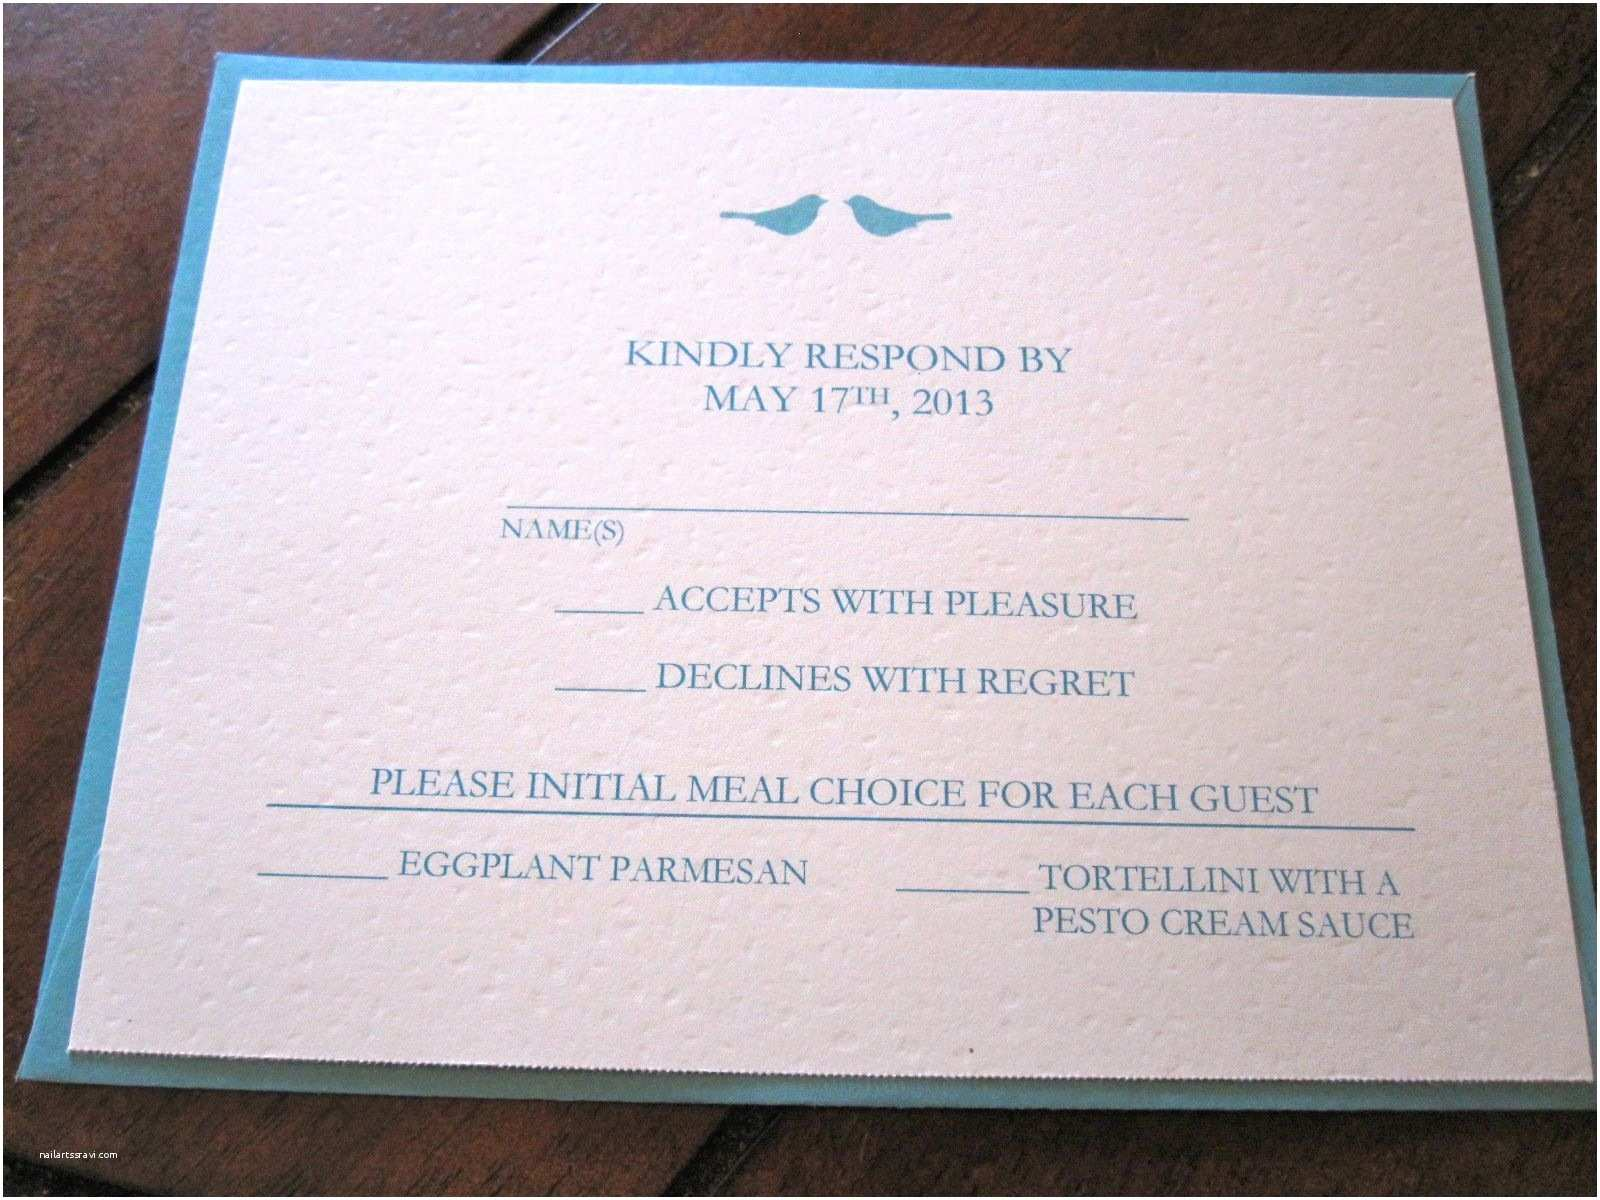 Wedding Invitations and Response Cards All In One Wedding Invitation Reply Card Wording Wedding Invitation